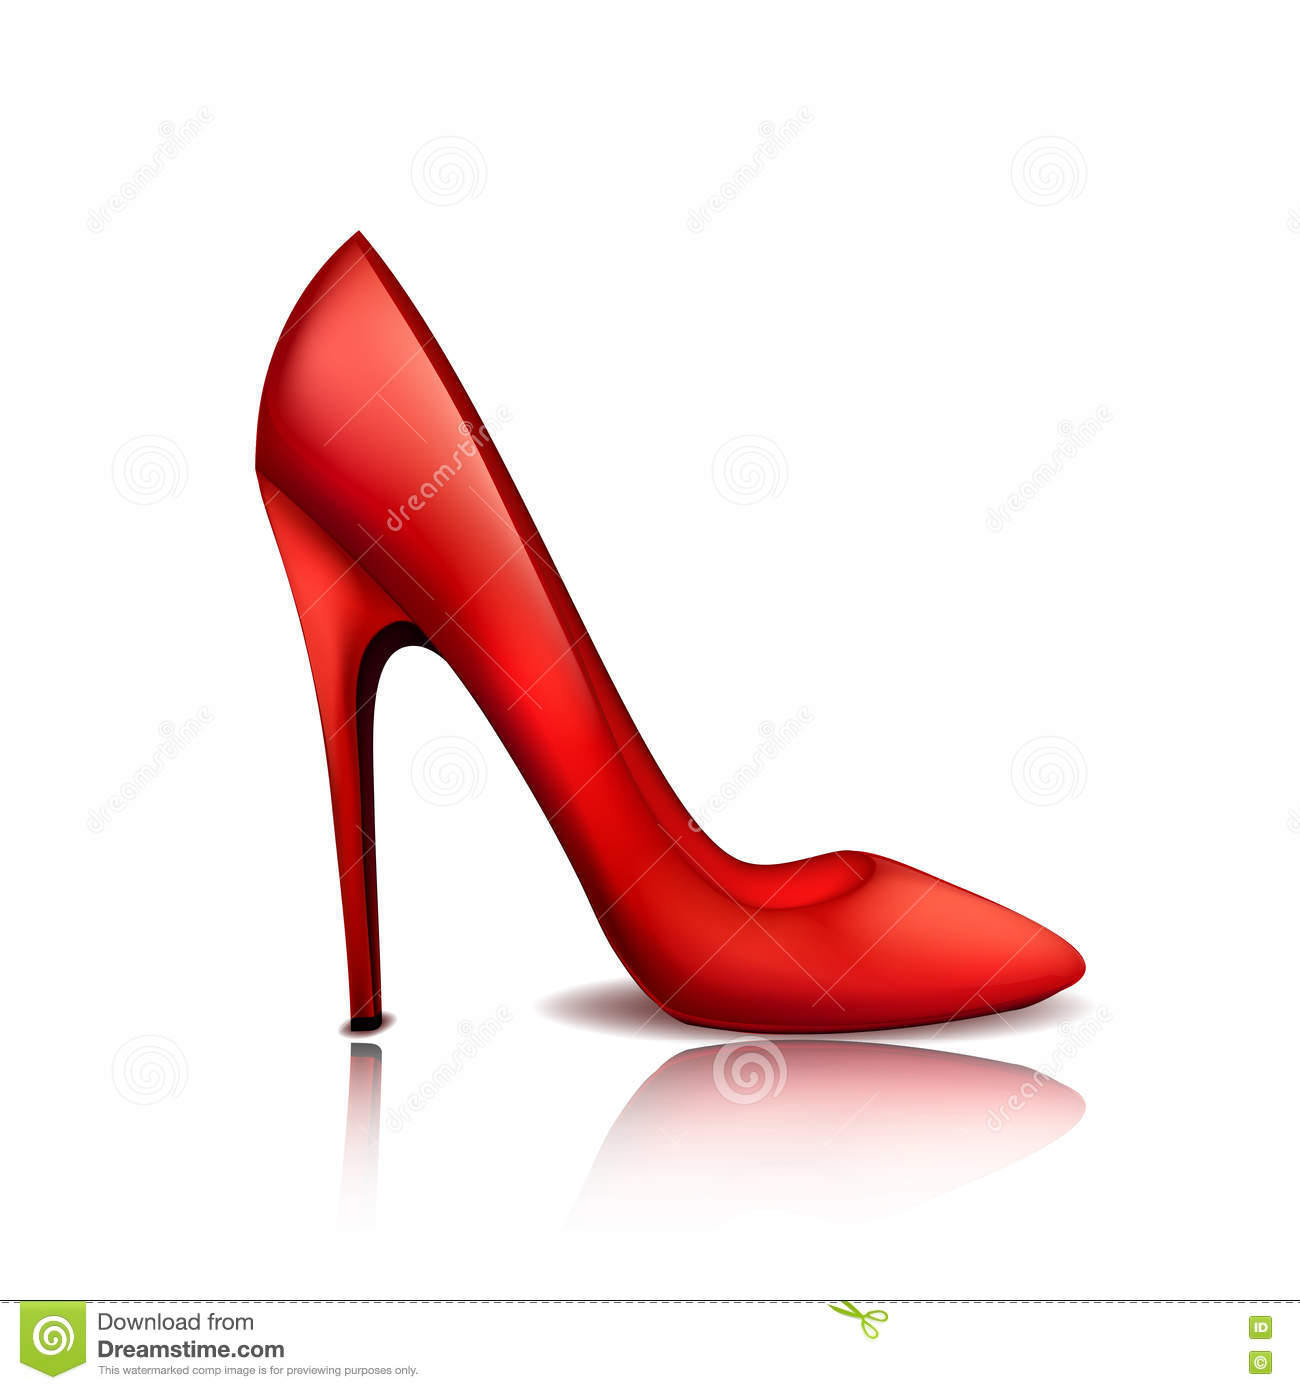 744771f3841 Red Stylish Female Shoe On A High Heel Stock Vector - Illustration ...